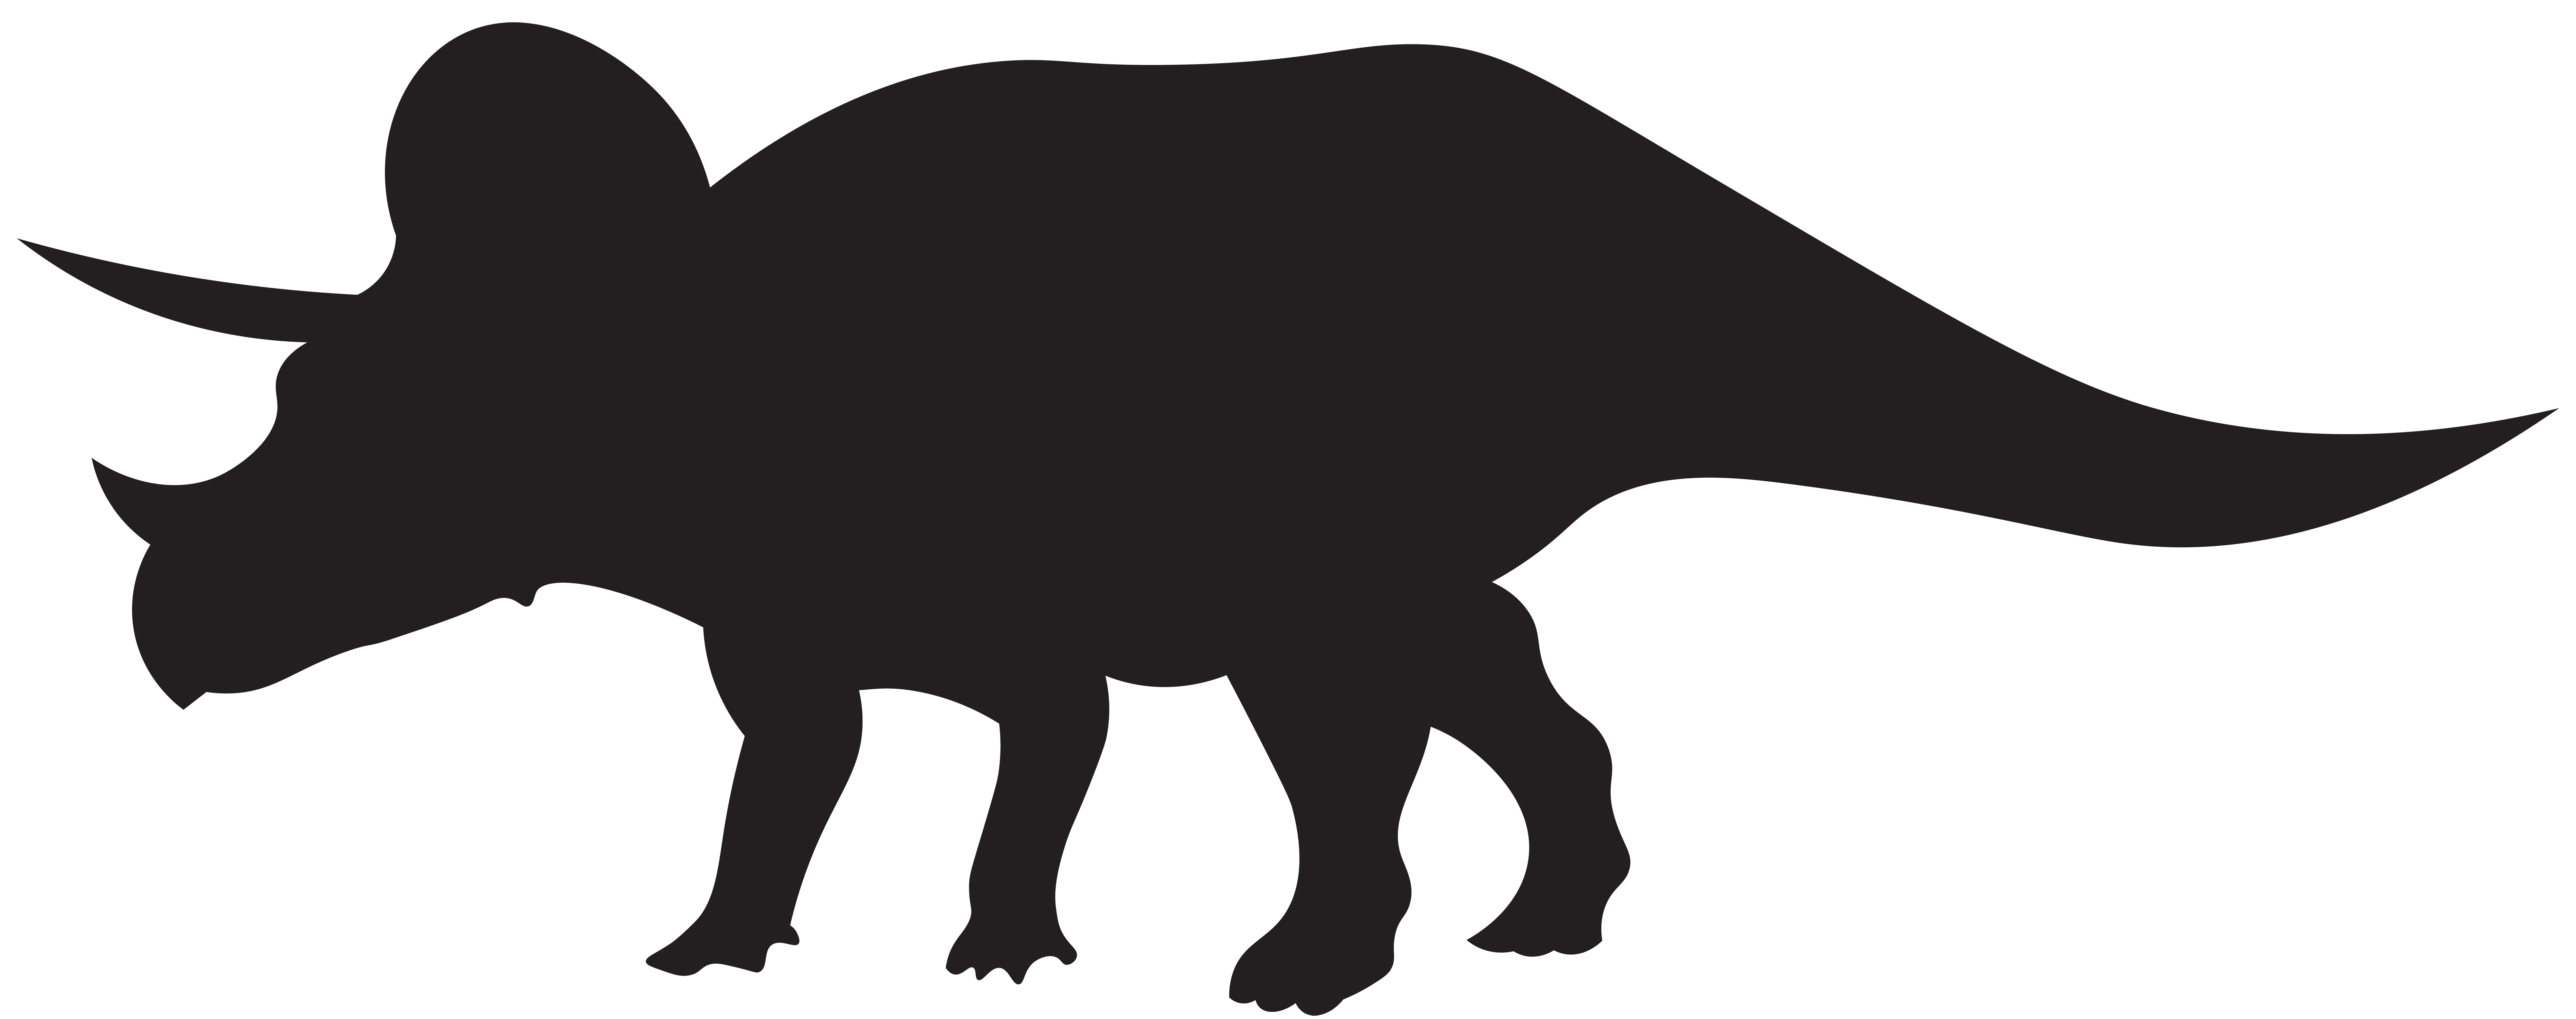 Dinosaur halloween clipart. Dinosaurs triceratops silhouette png